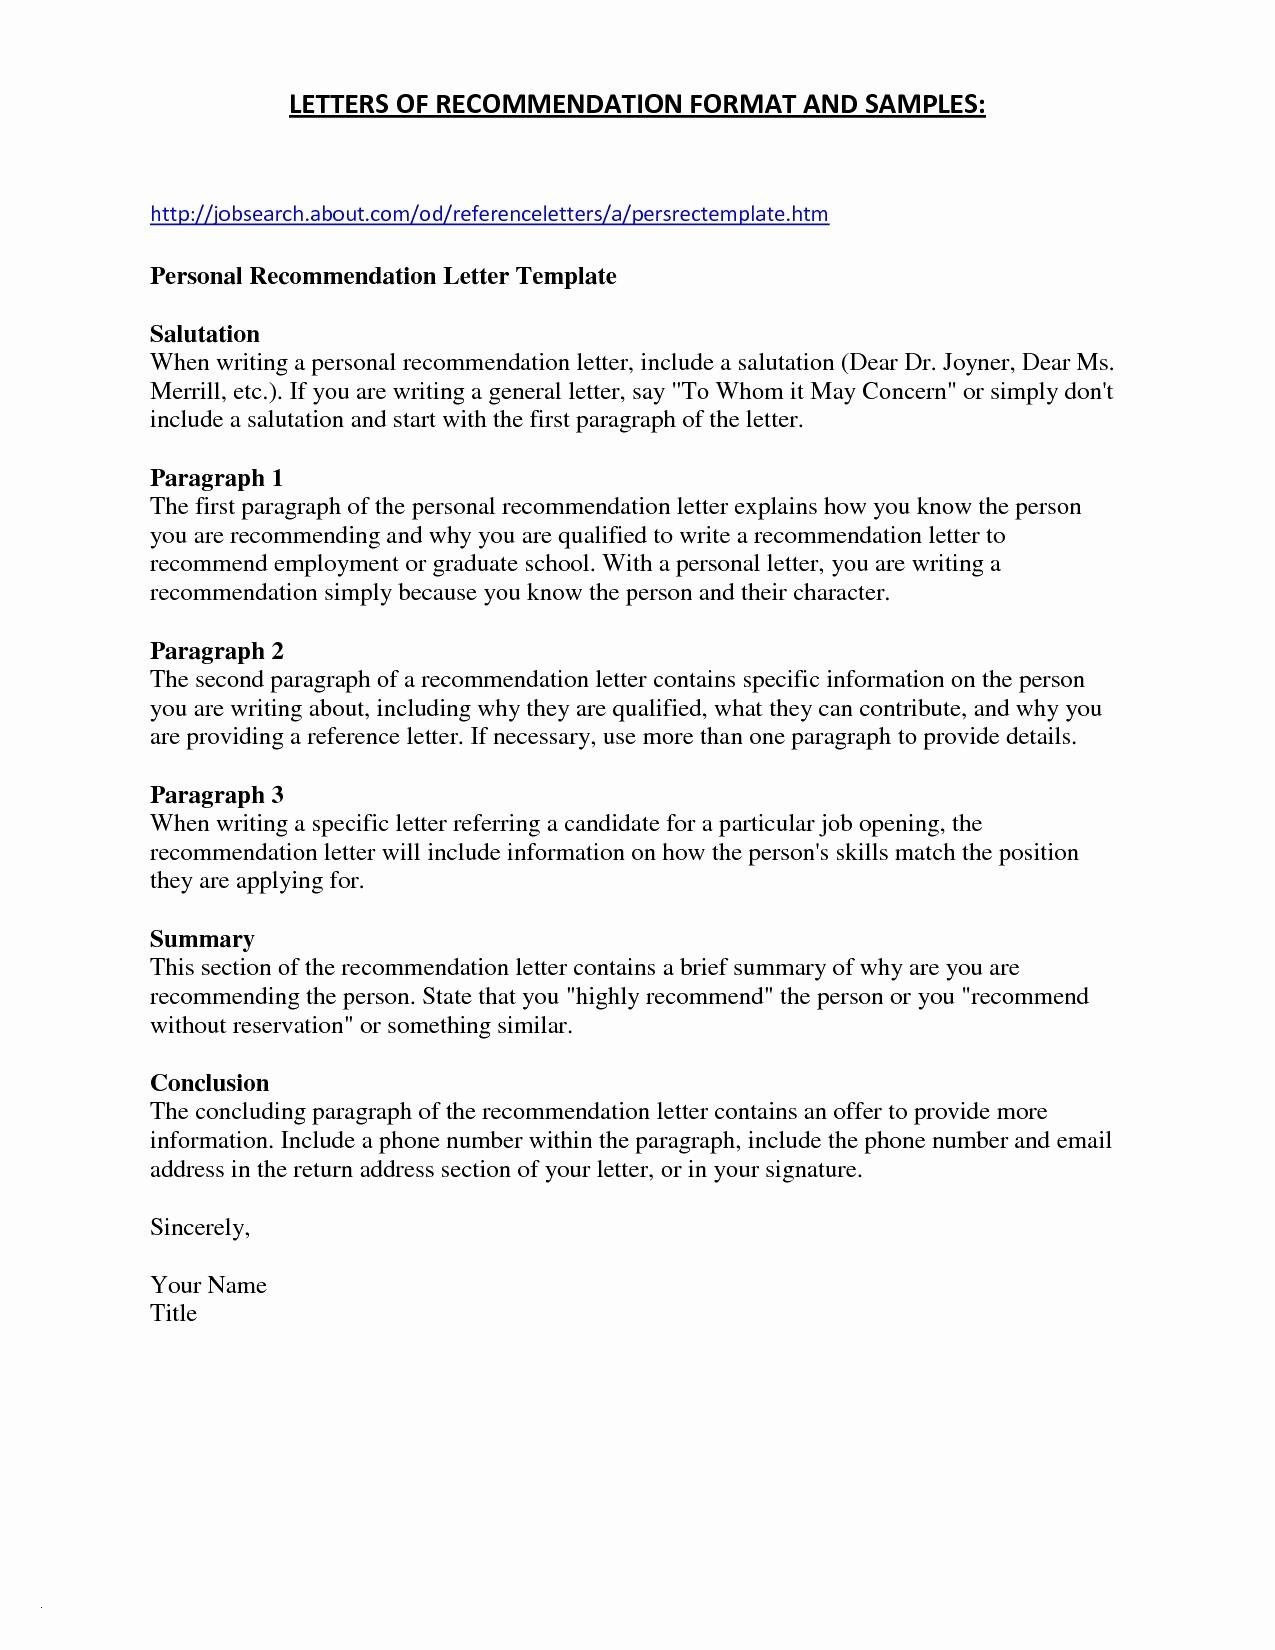 Personal Loan Agreement Letter Sample Personal Loan Agreement With Collateral Paramythia